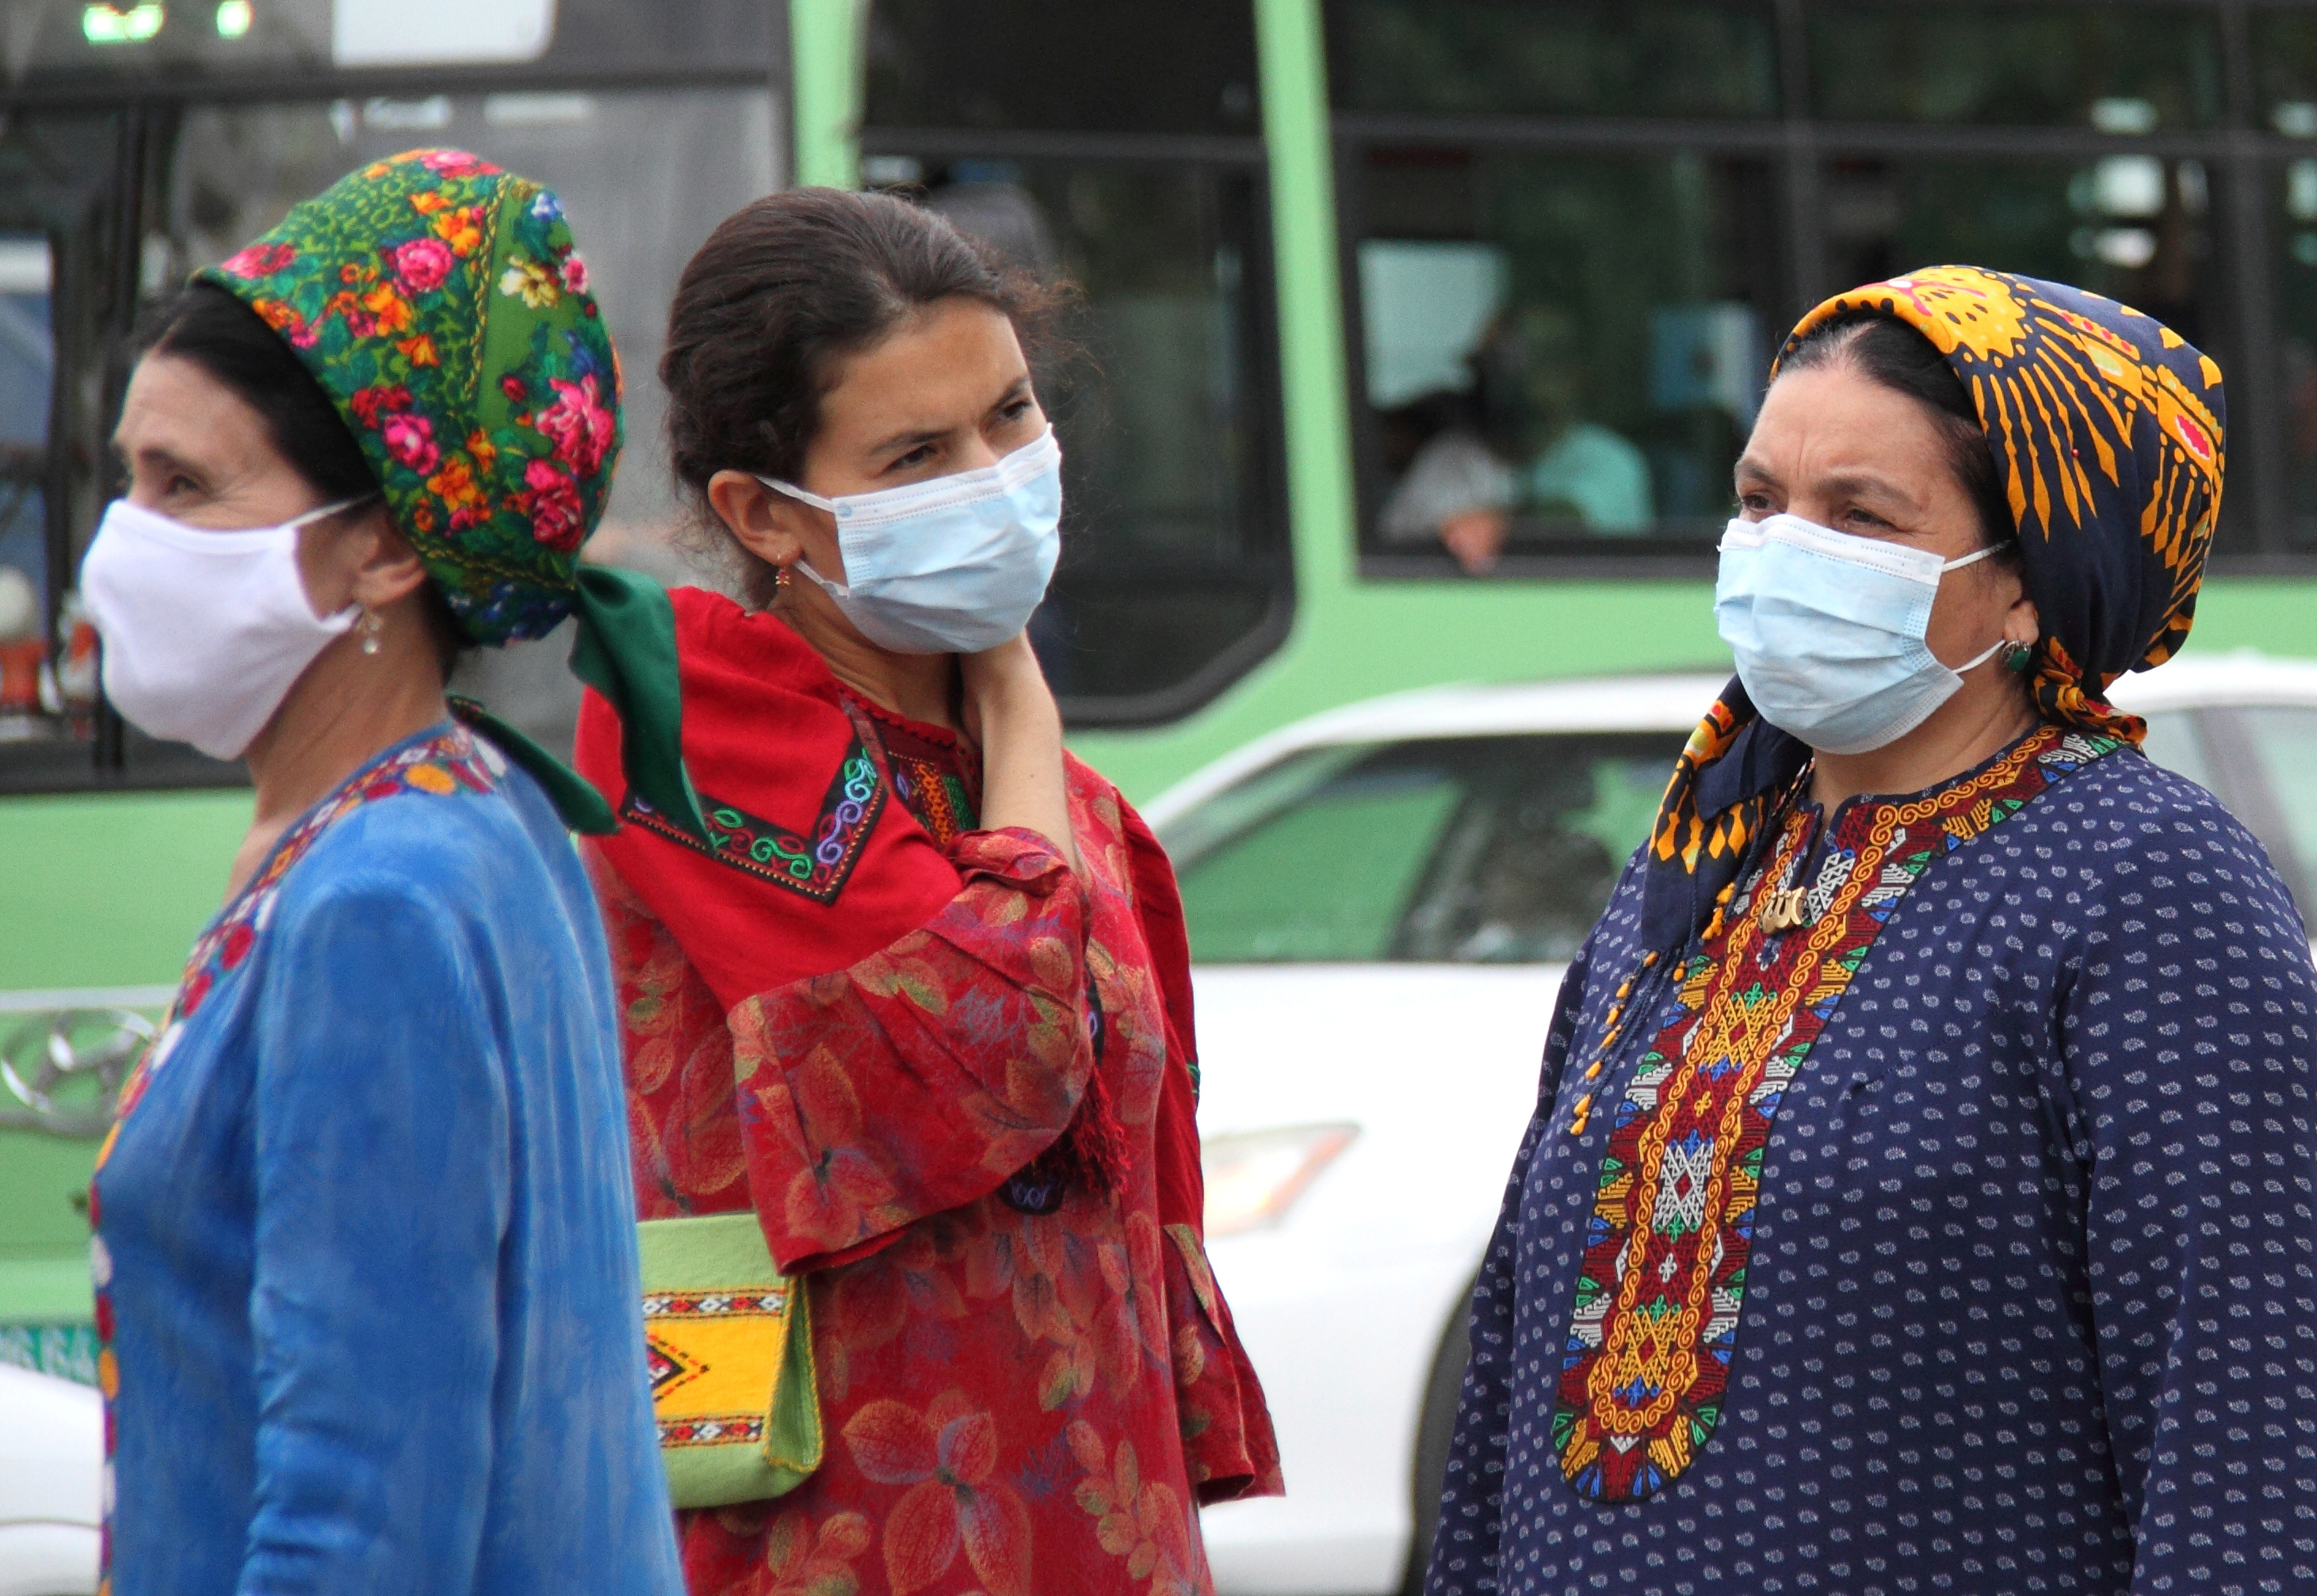 Women wearing protective face masks, used as a preventive measure against the spread of the coronavirus disease (COVID-19), are seen at a bus stop in Ashgabat, Turkmenistan July 13, 2020. Picture taken July 13, 2020. REUTERS/Vyacheslav Sarkisyan